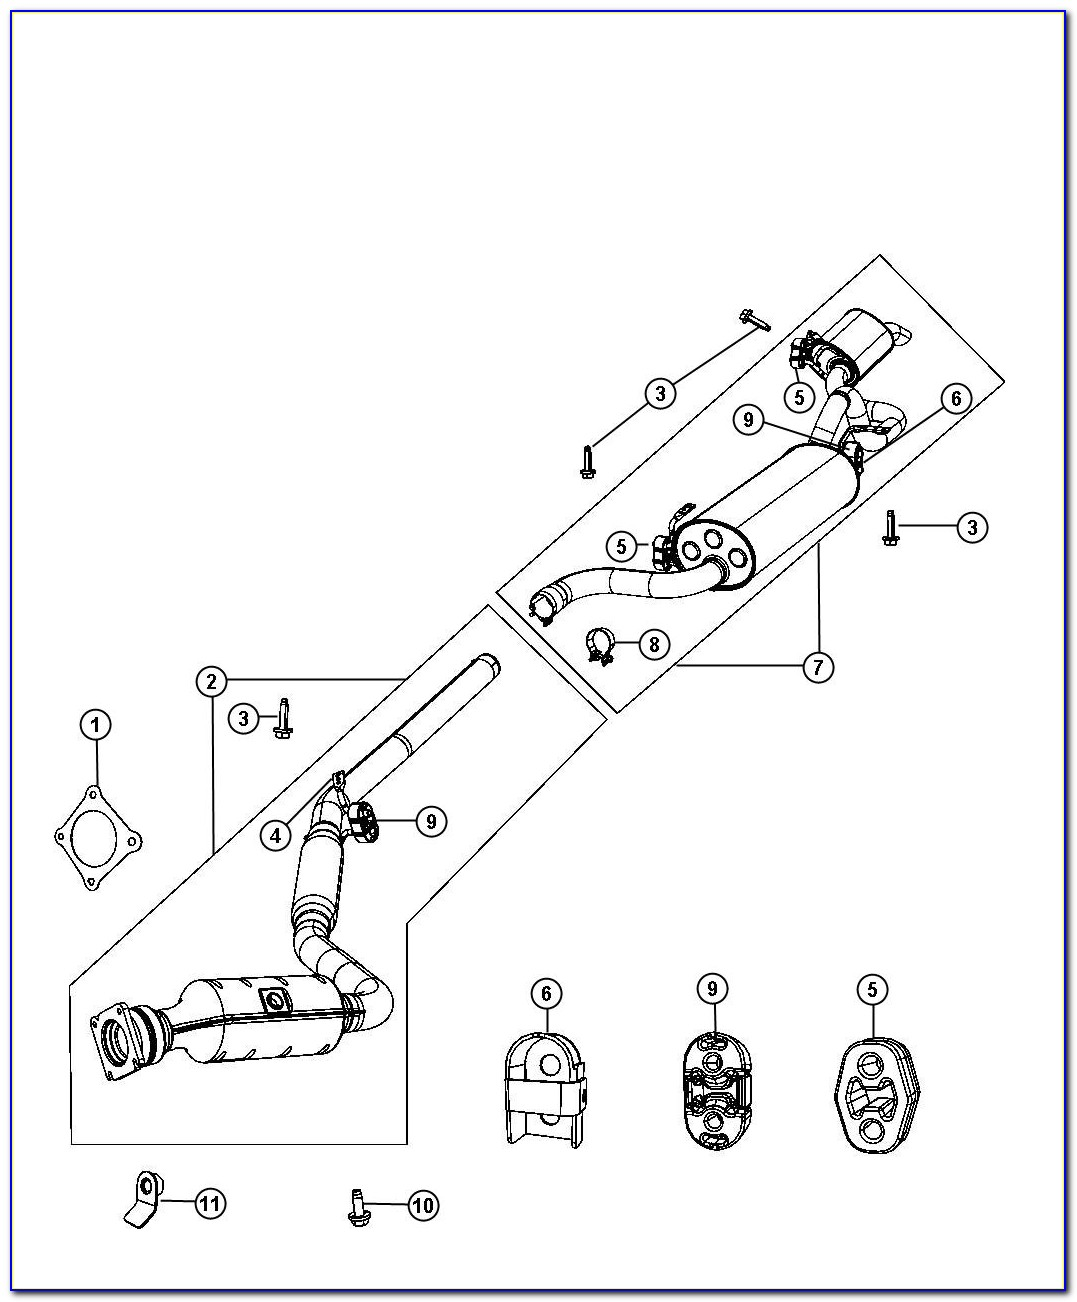 2010 Chrysler Town And Country Exhaust System Diagram